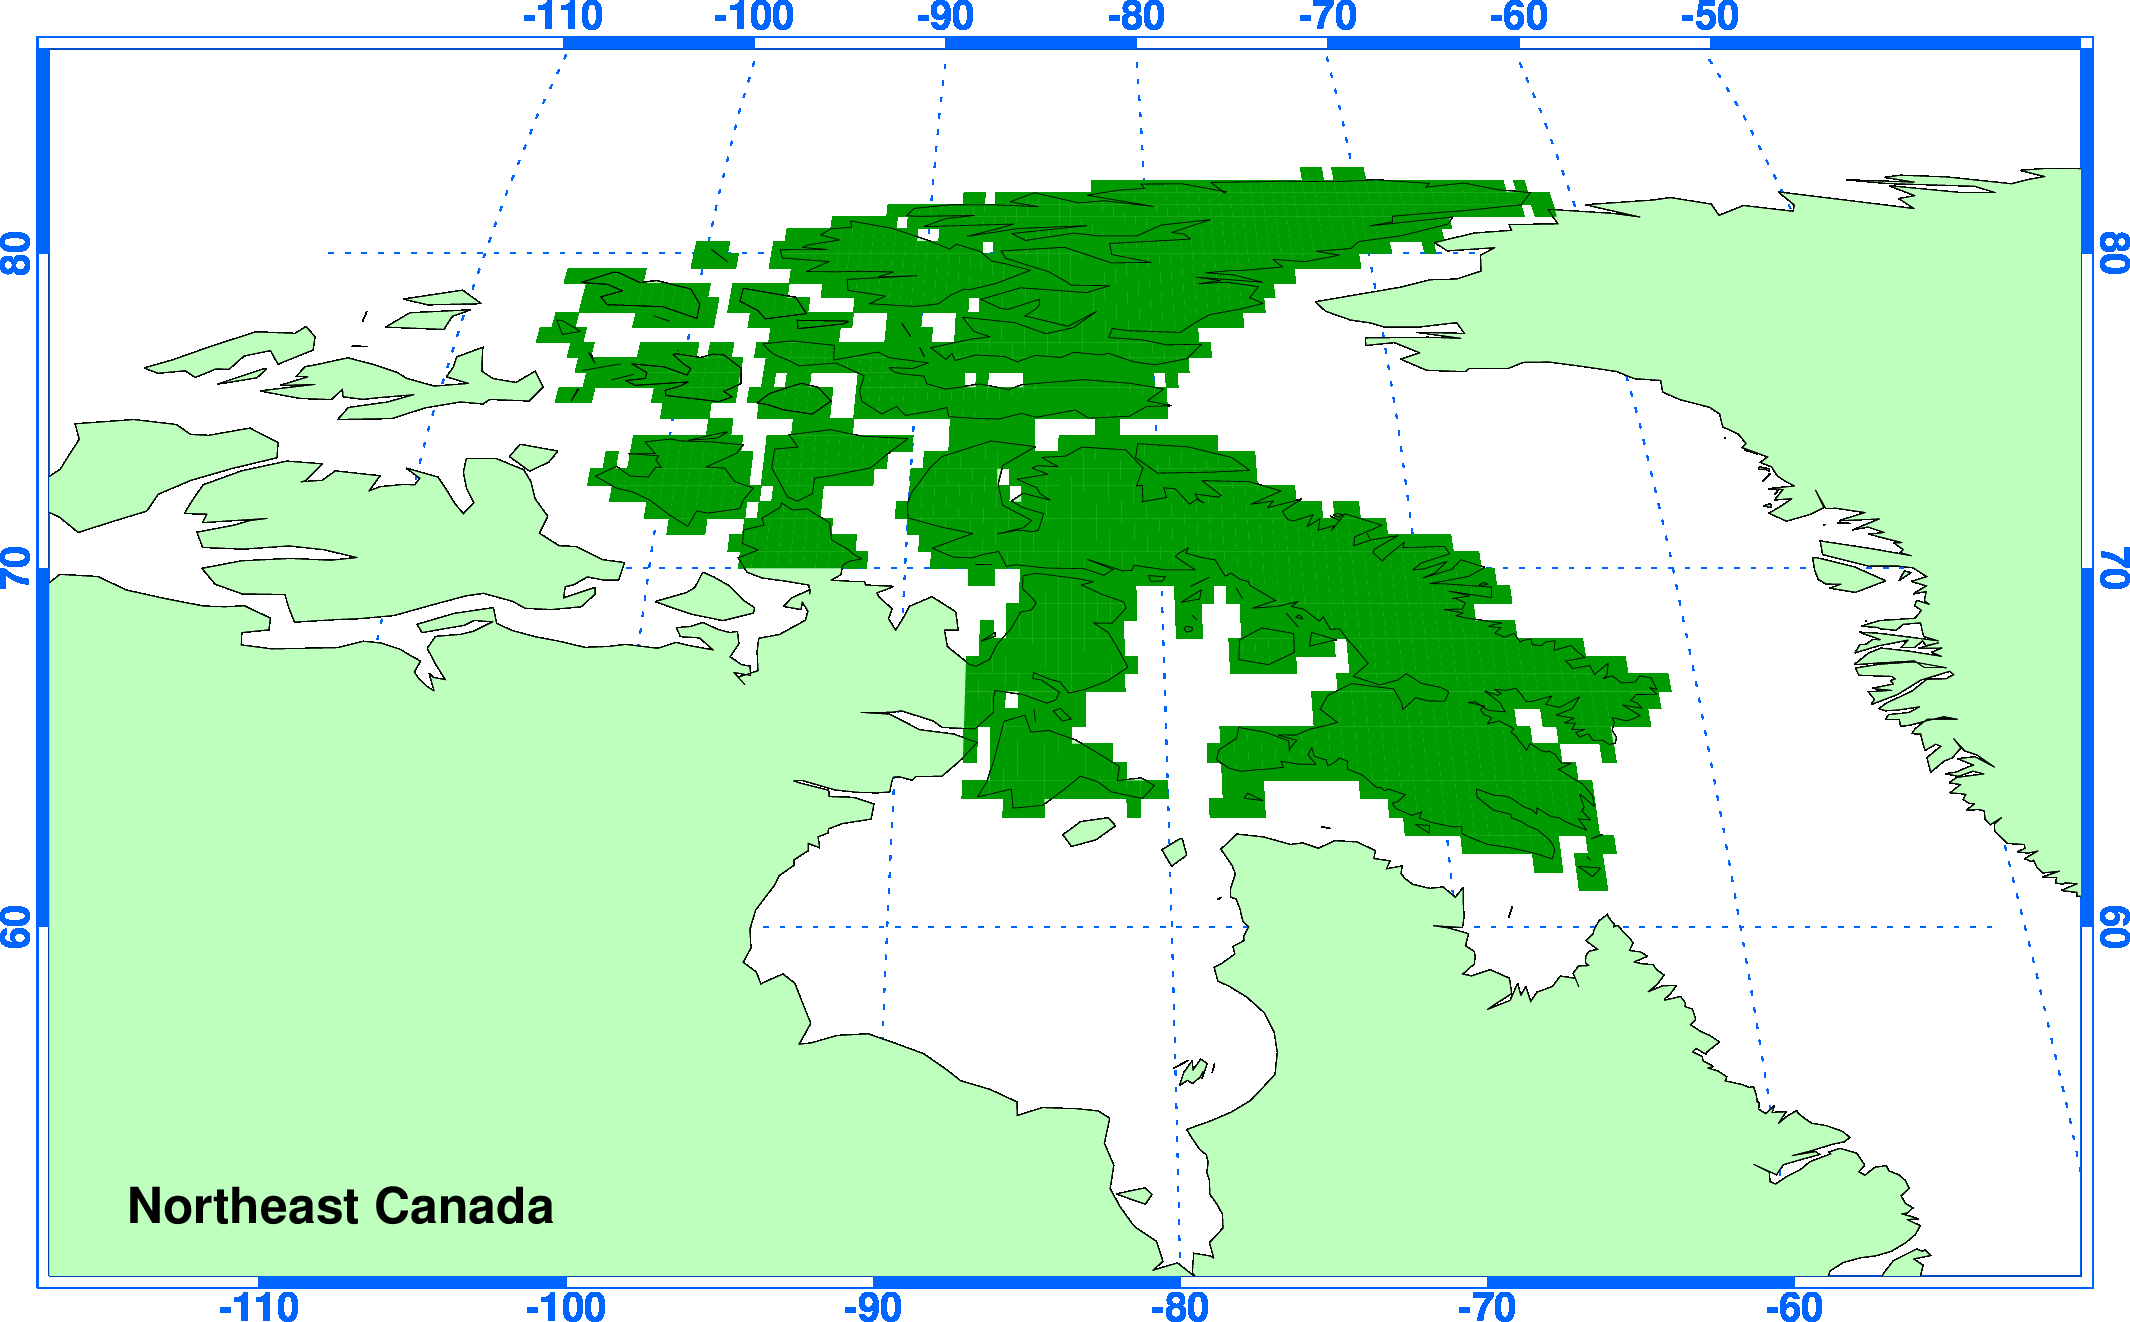 the map shows the definition of this country or region on the 05 resolution land surface grid used for the cru ts observational data and the climgen